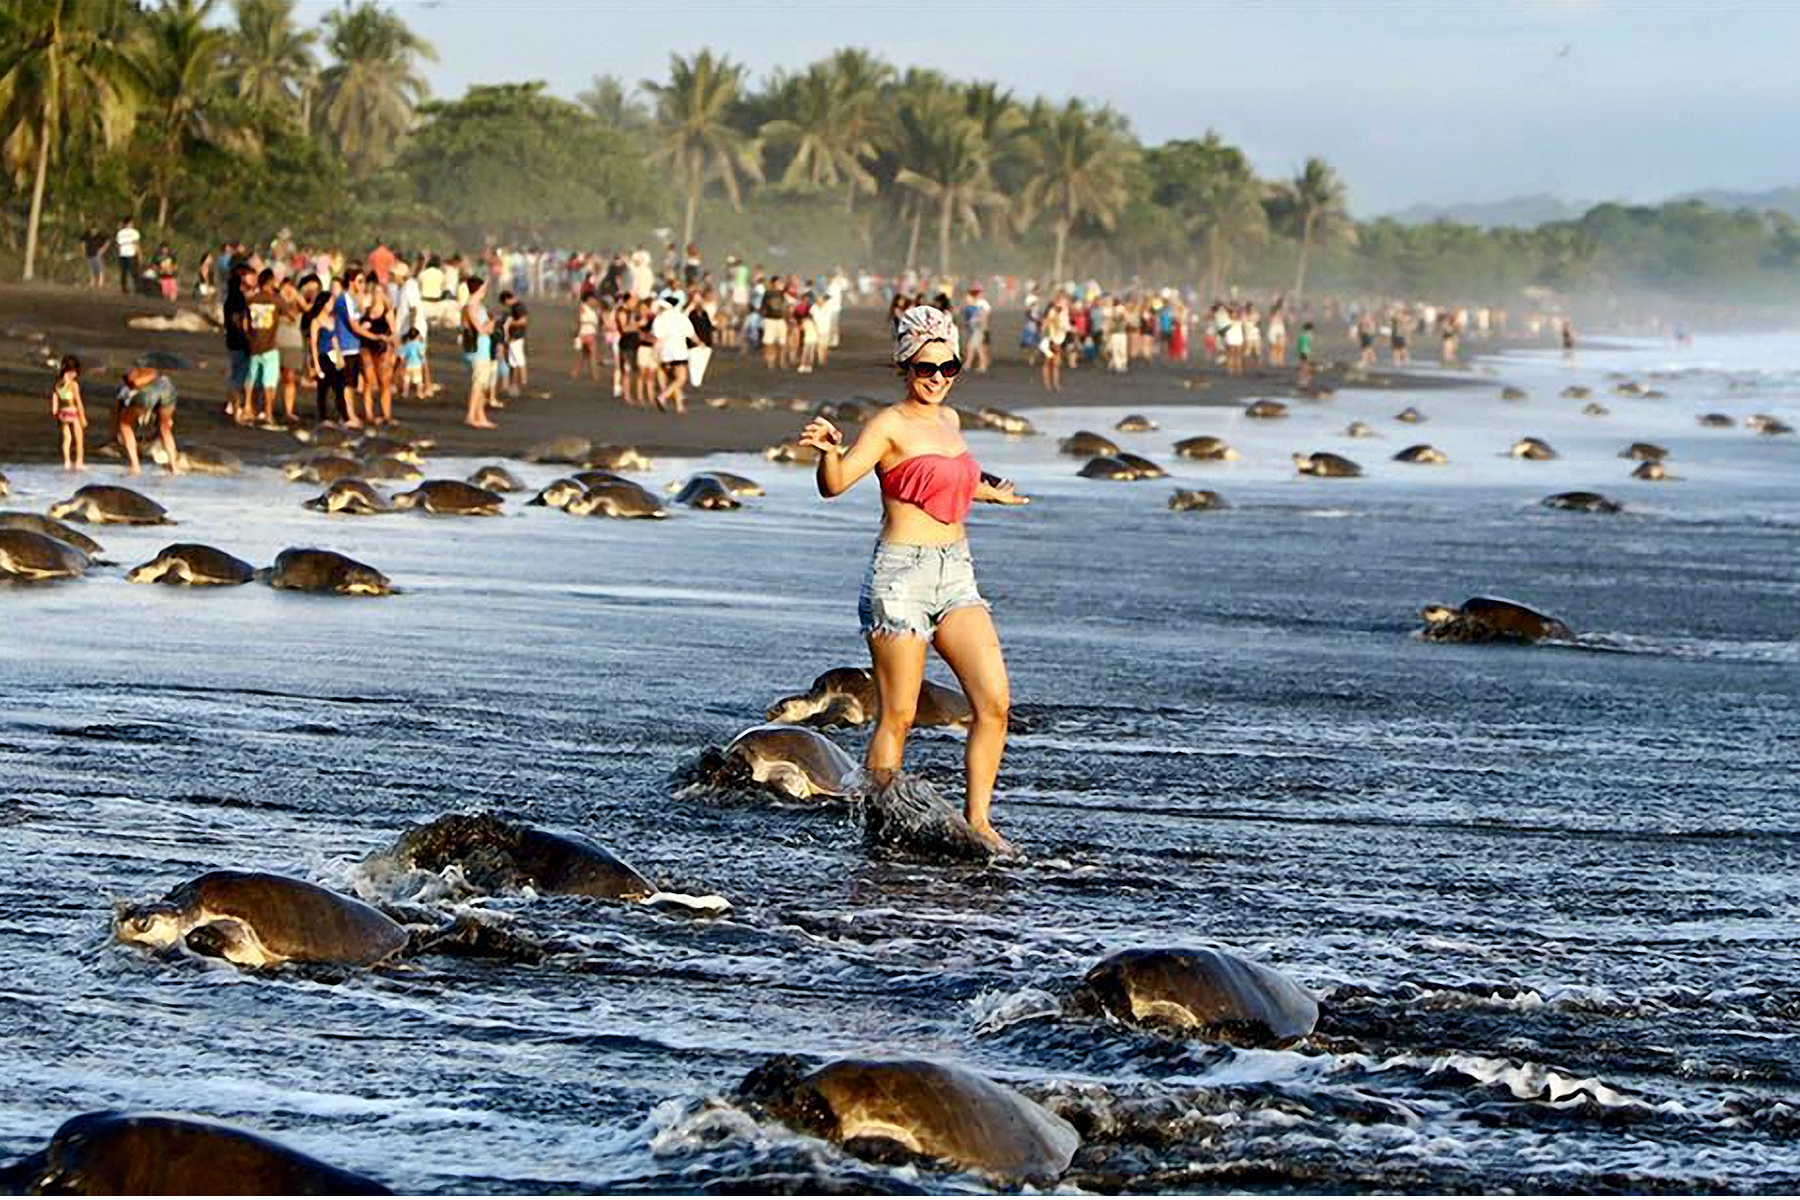 Turtle tourism clearly has reached its tipping point.